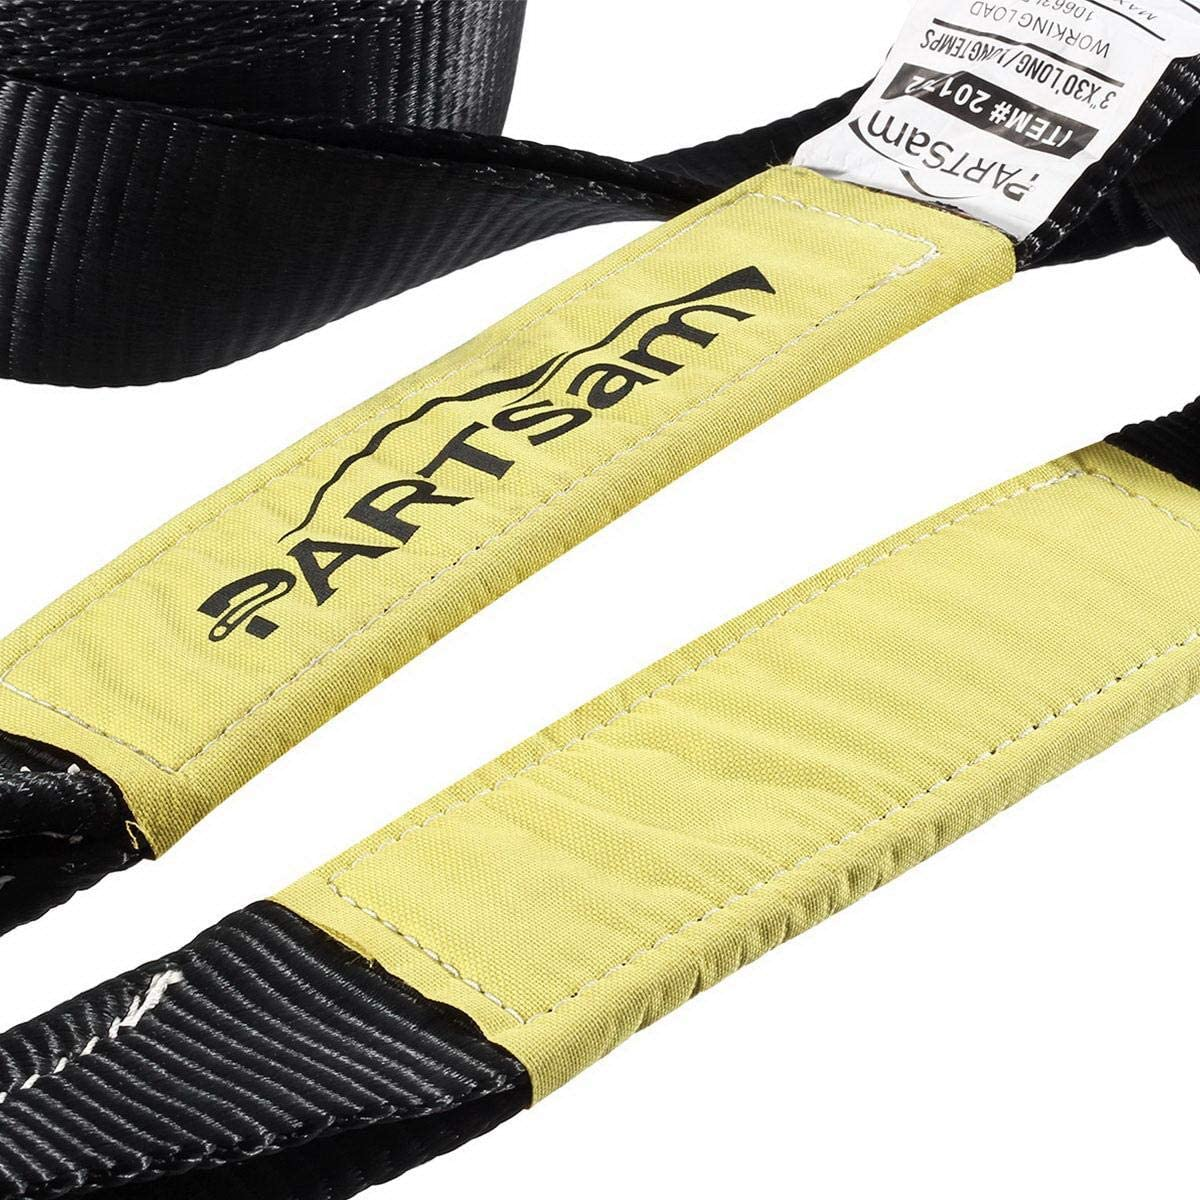 Partsam Recovery Tow Strap 3 x 30-30000 lbs Break Strength Heavy Duty Recovery Strap with Triple Reinforced Loop Ends Emergency Off Road Truck Accessories Towing Strap Rope Storage Bag